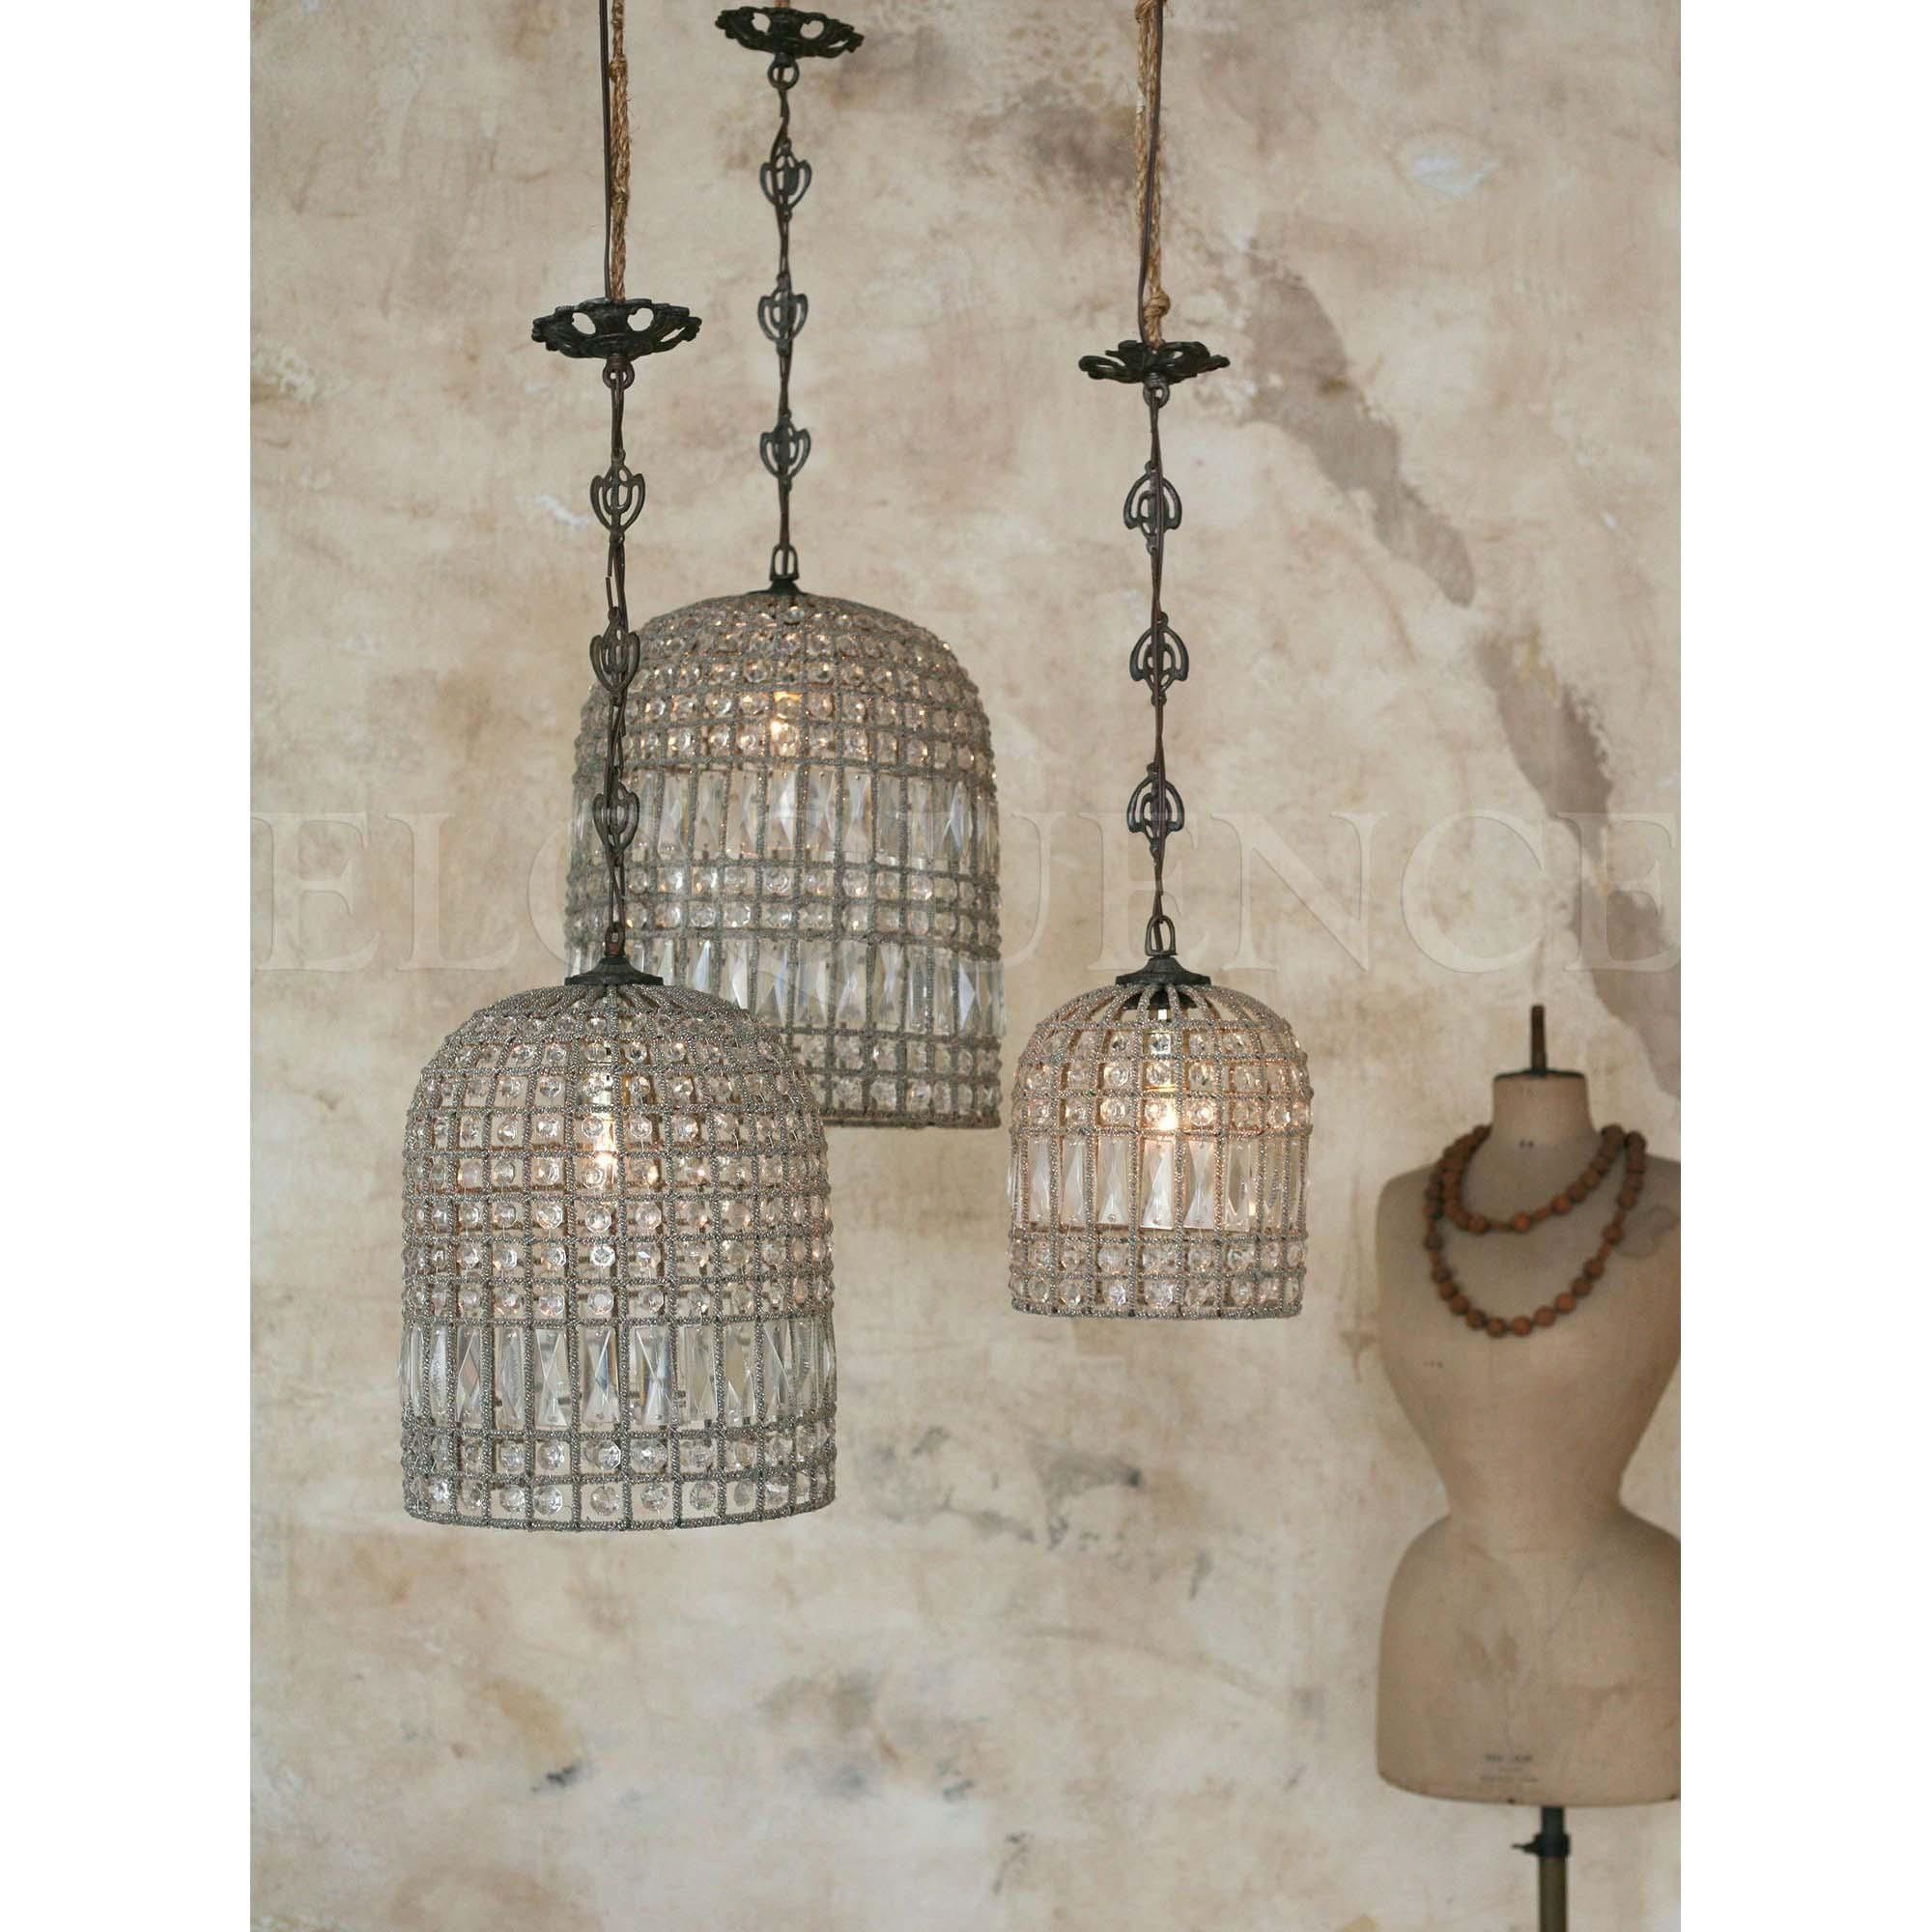 Pretty fun birdcage chandelier for home lighting eloquence pretty fun birdcage chandelier for home lighting eloquence reproduction birdcage chandelier for interior lighting ideas aloadofball Choice Image